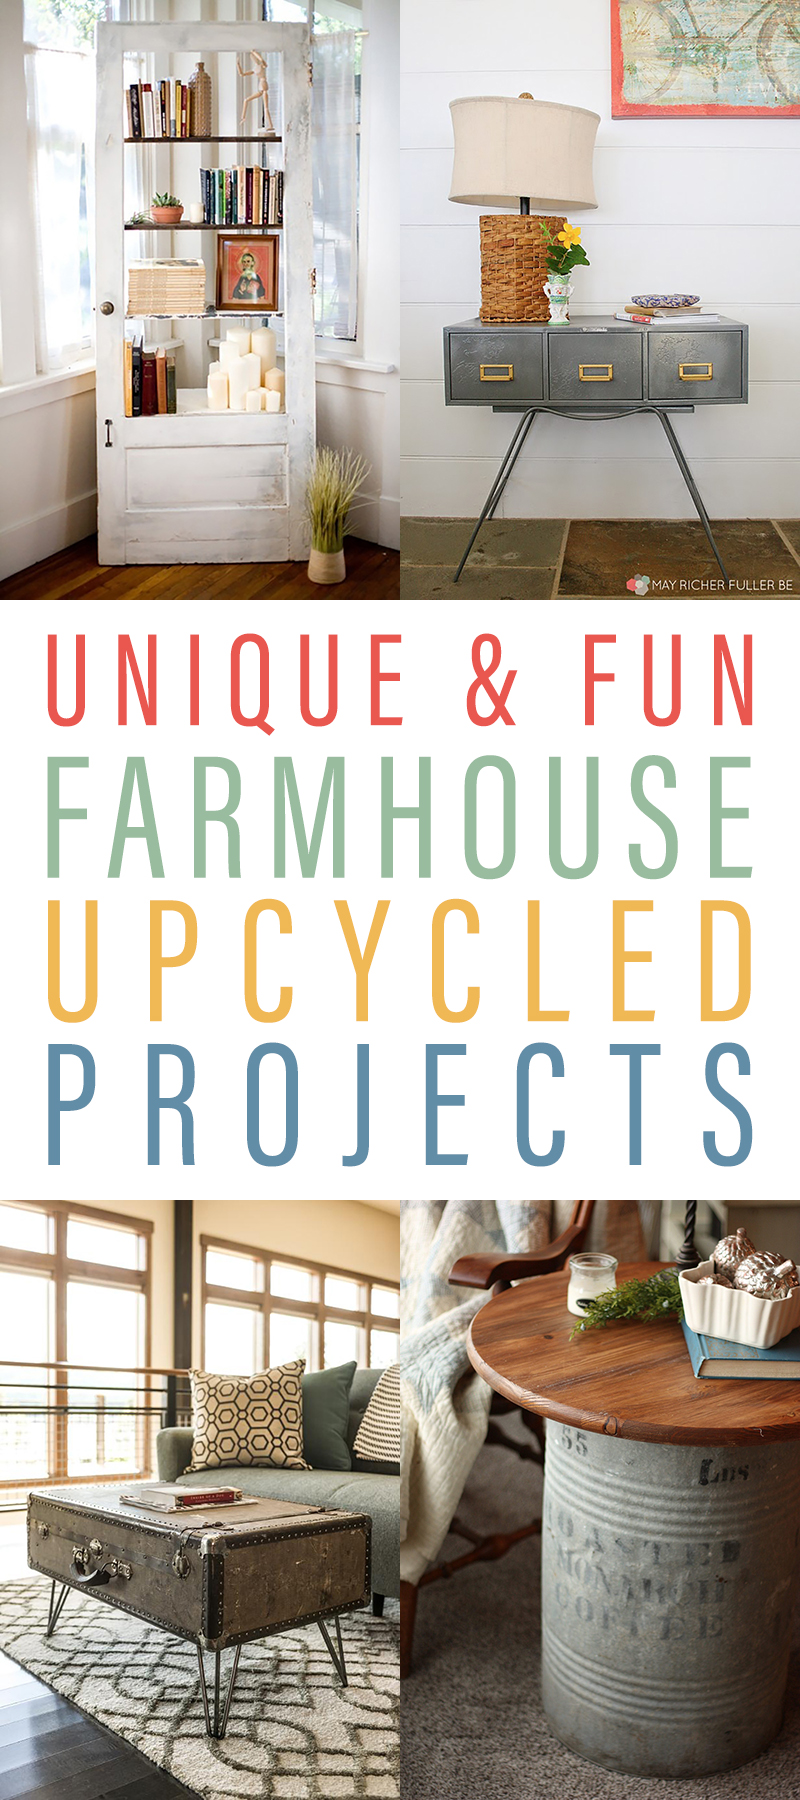 Unique and Fun Farmhouse Upcycled Projects